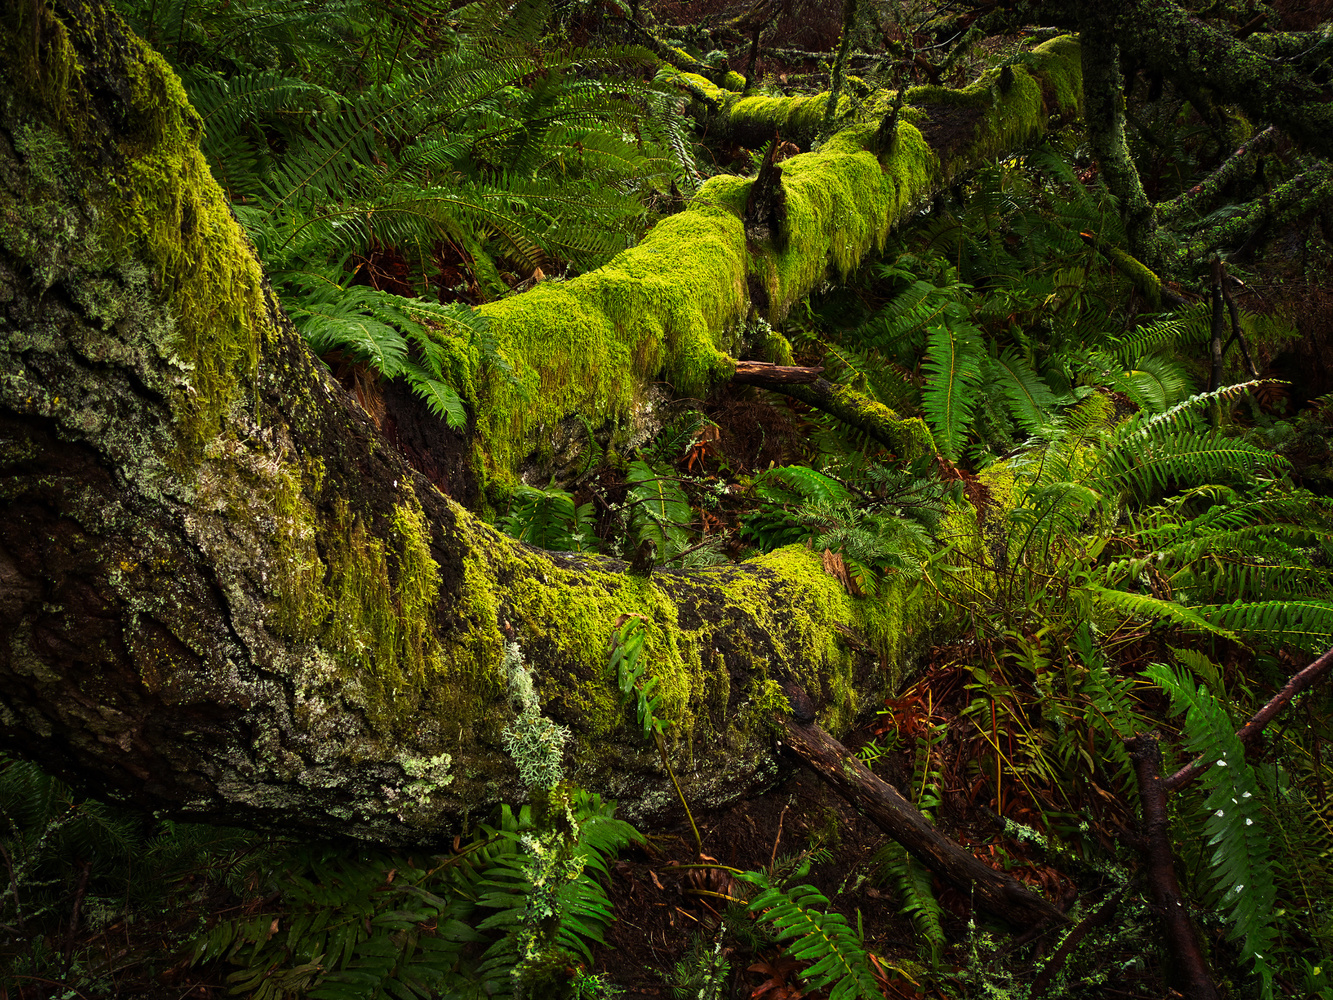 Mossy Branches by David Medeiros